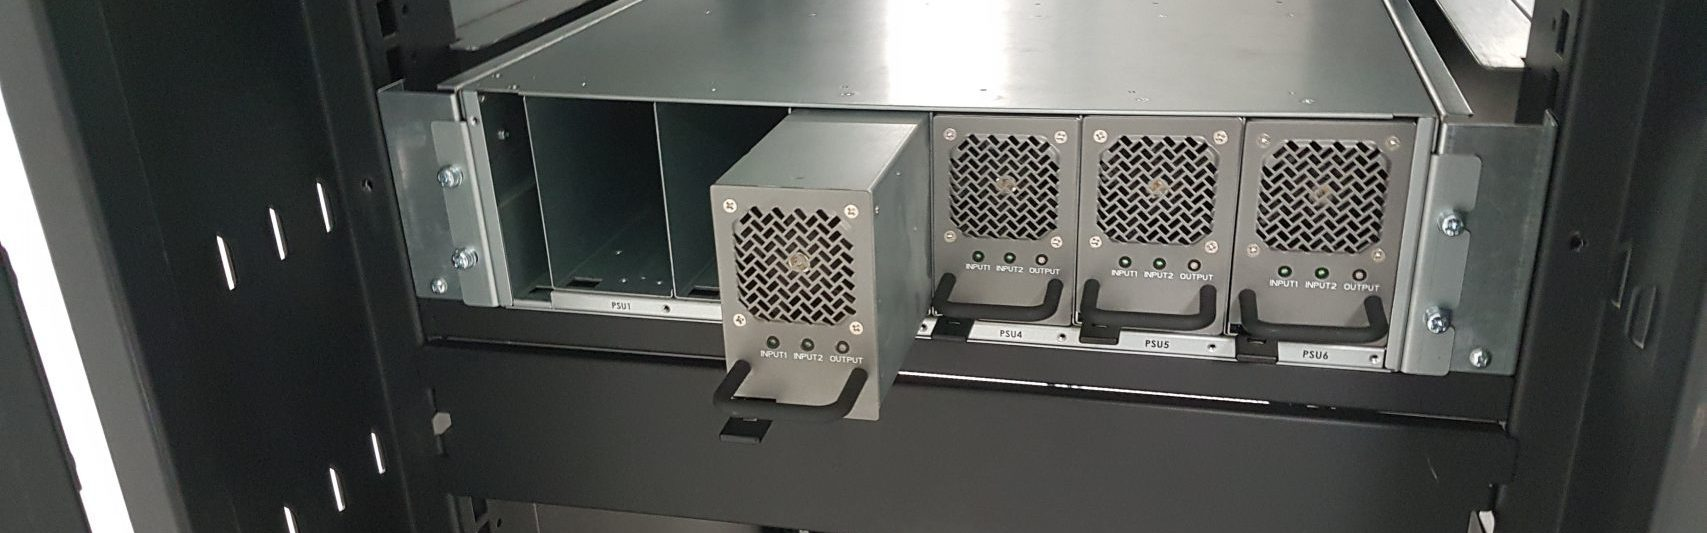 Liteon Power Shelf in OCP racksolutions enclosure